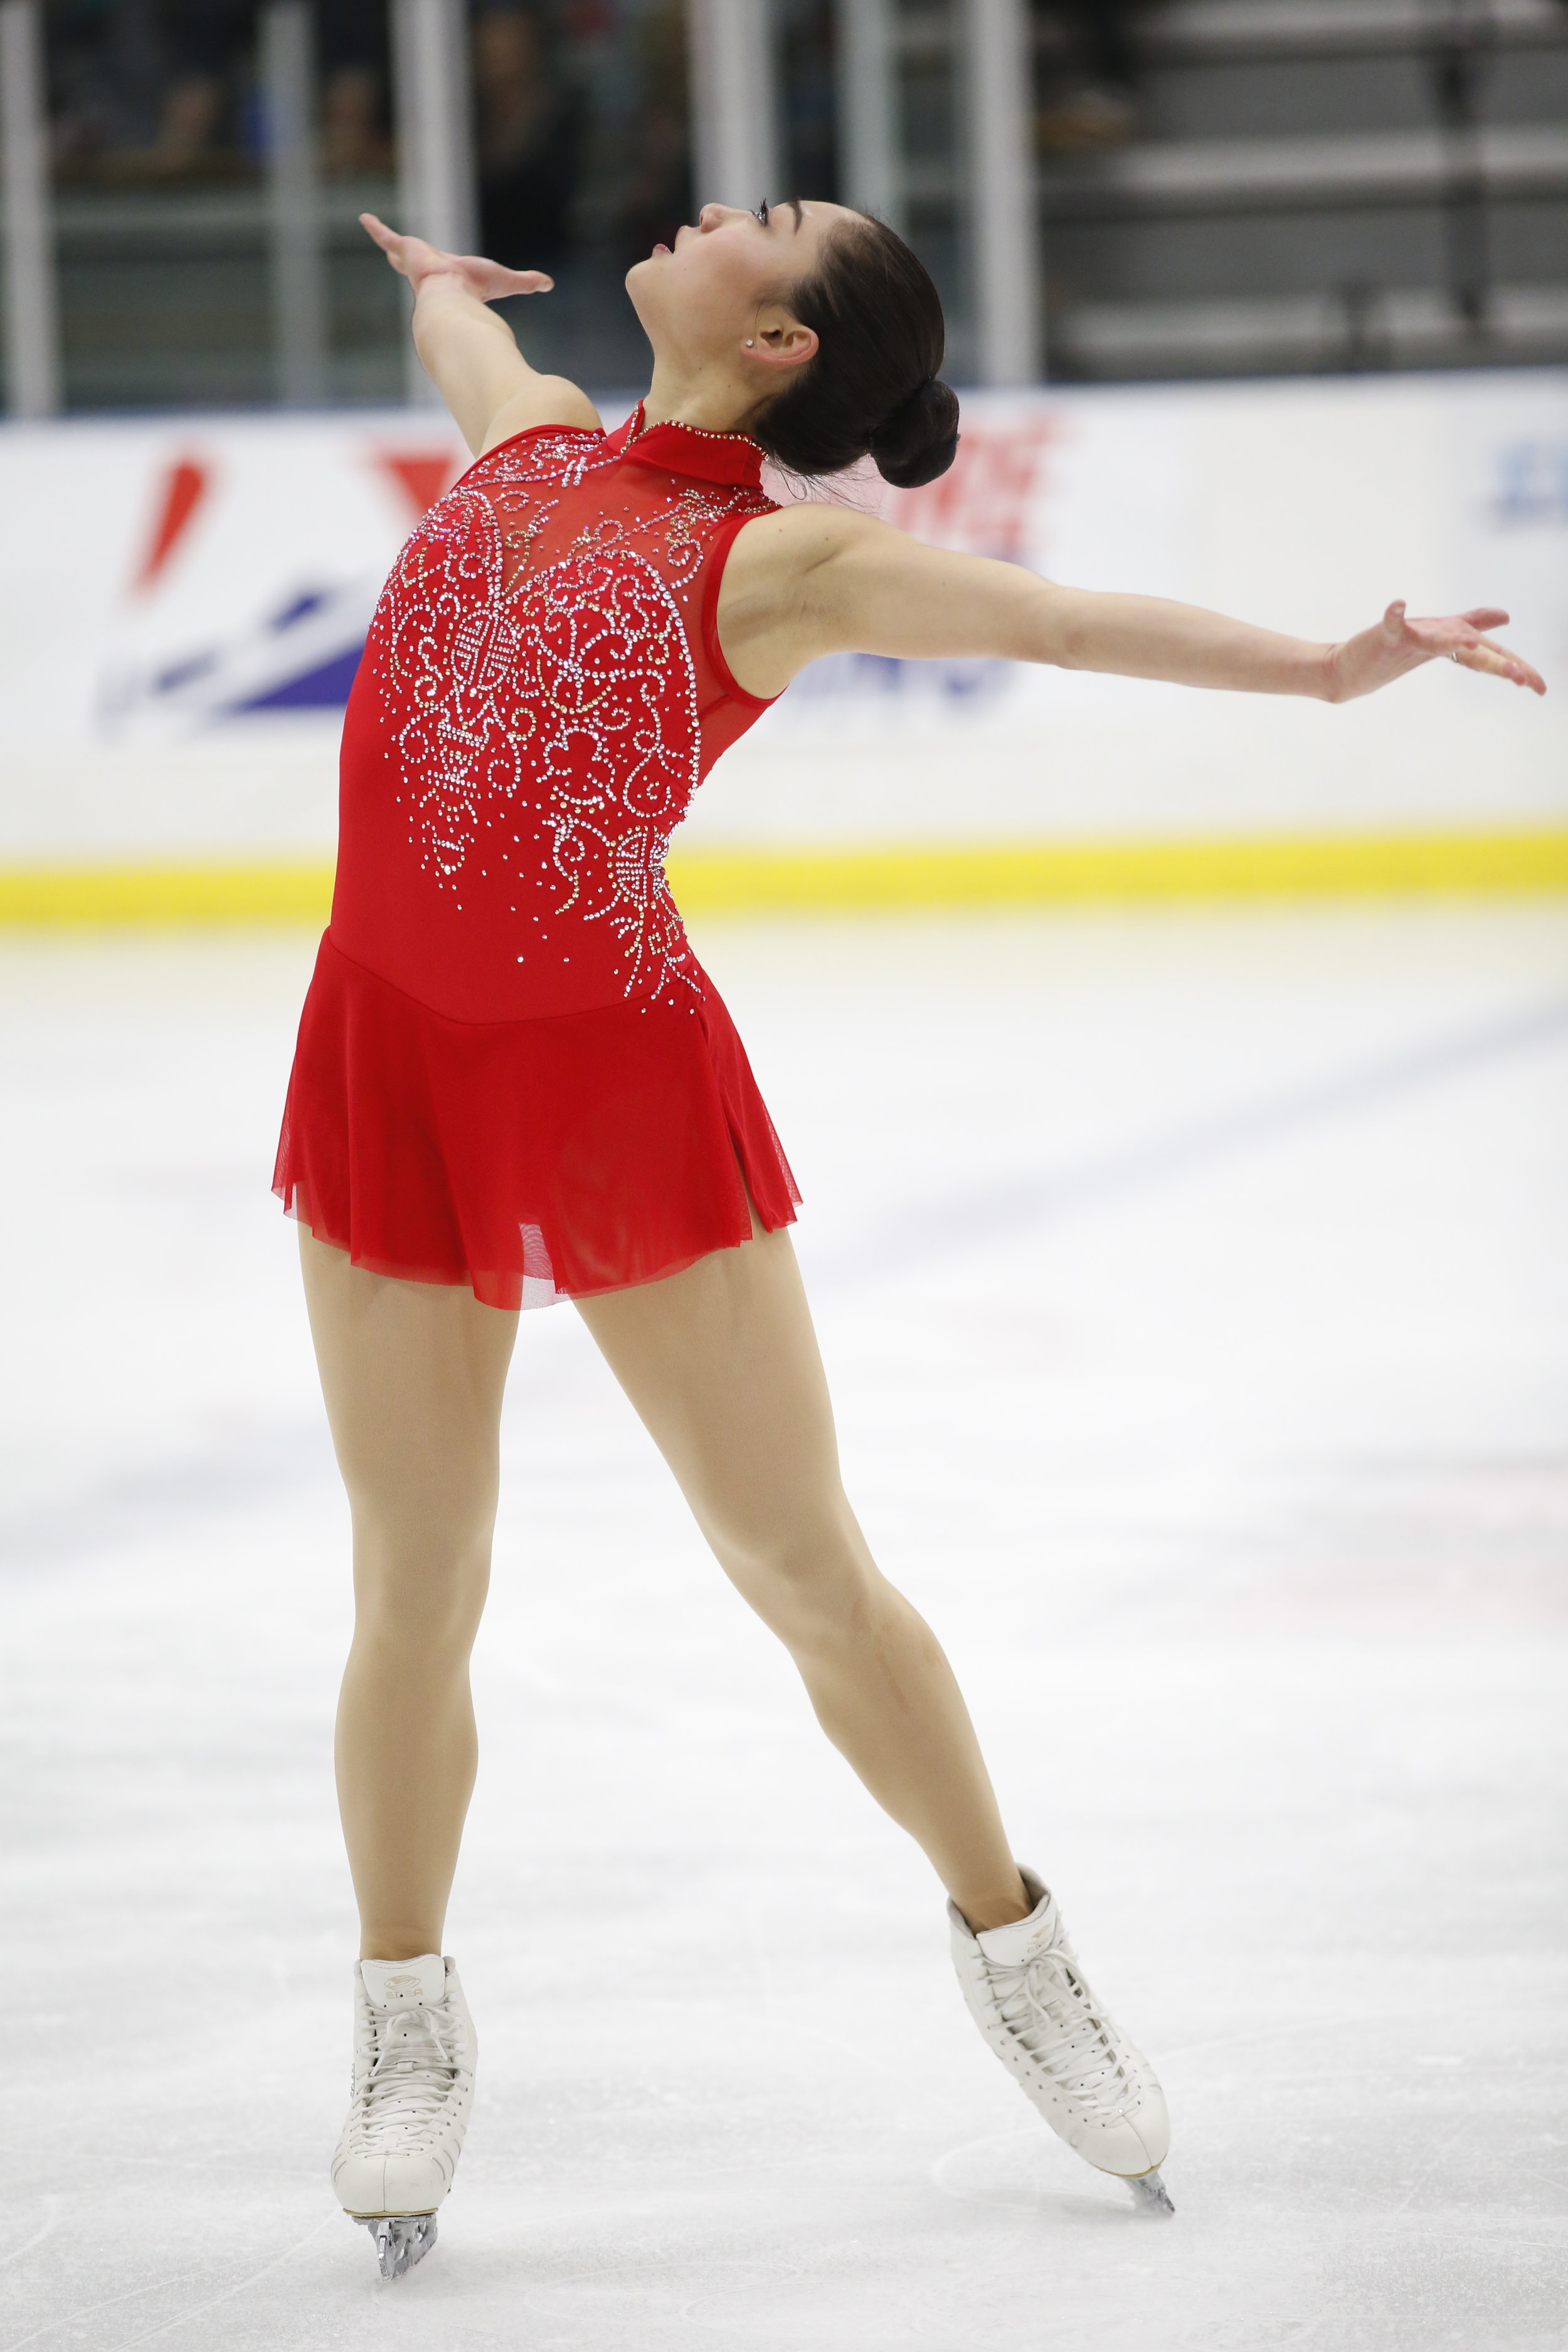 Mirai Nagasu - 2018 Olympic Bronze Medalist, US World Team Member and Dancing With The Stars celebrity, and first female to land a triple axel at the Olympics